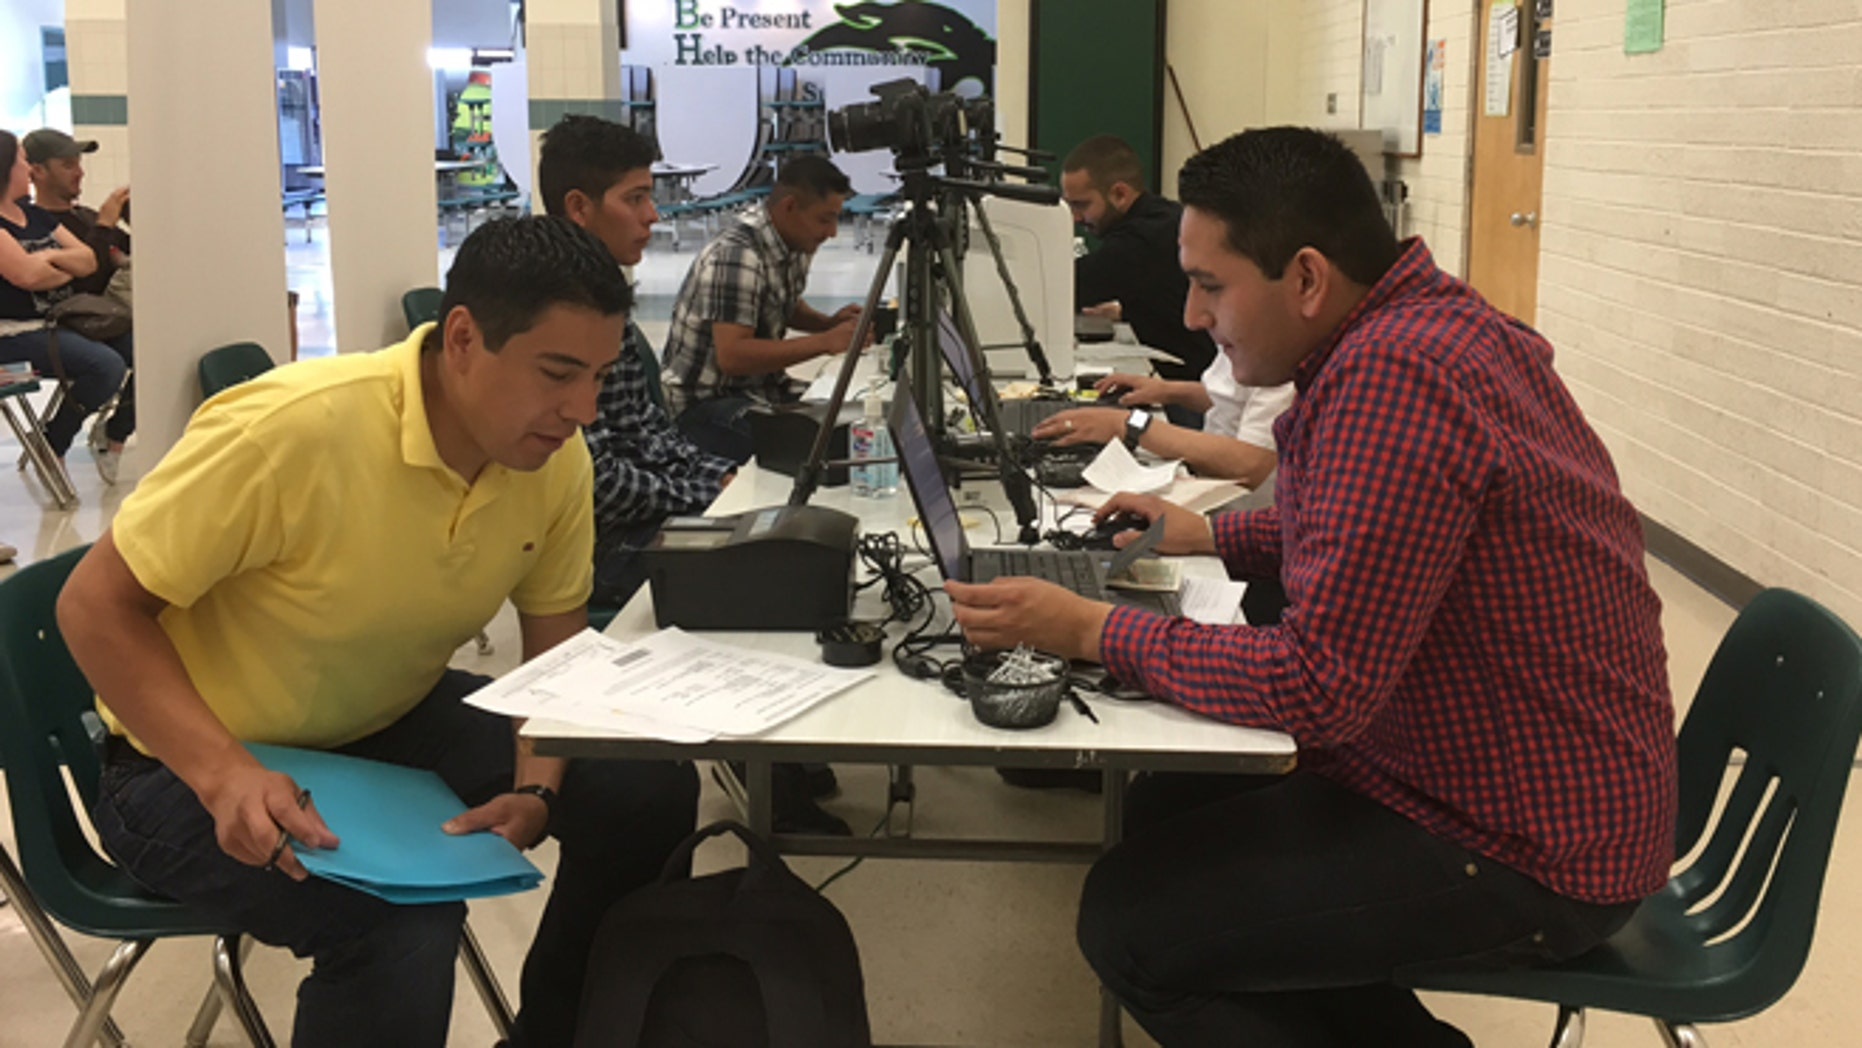 Local groups help get consular services to Mexican